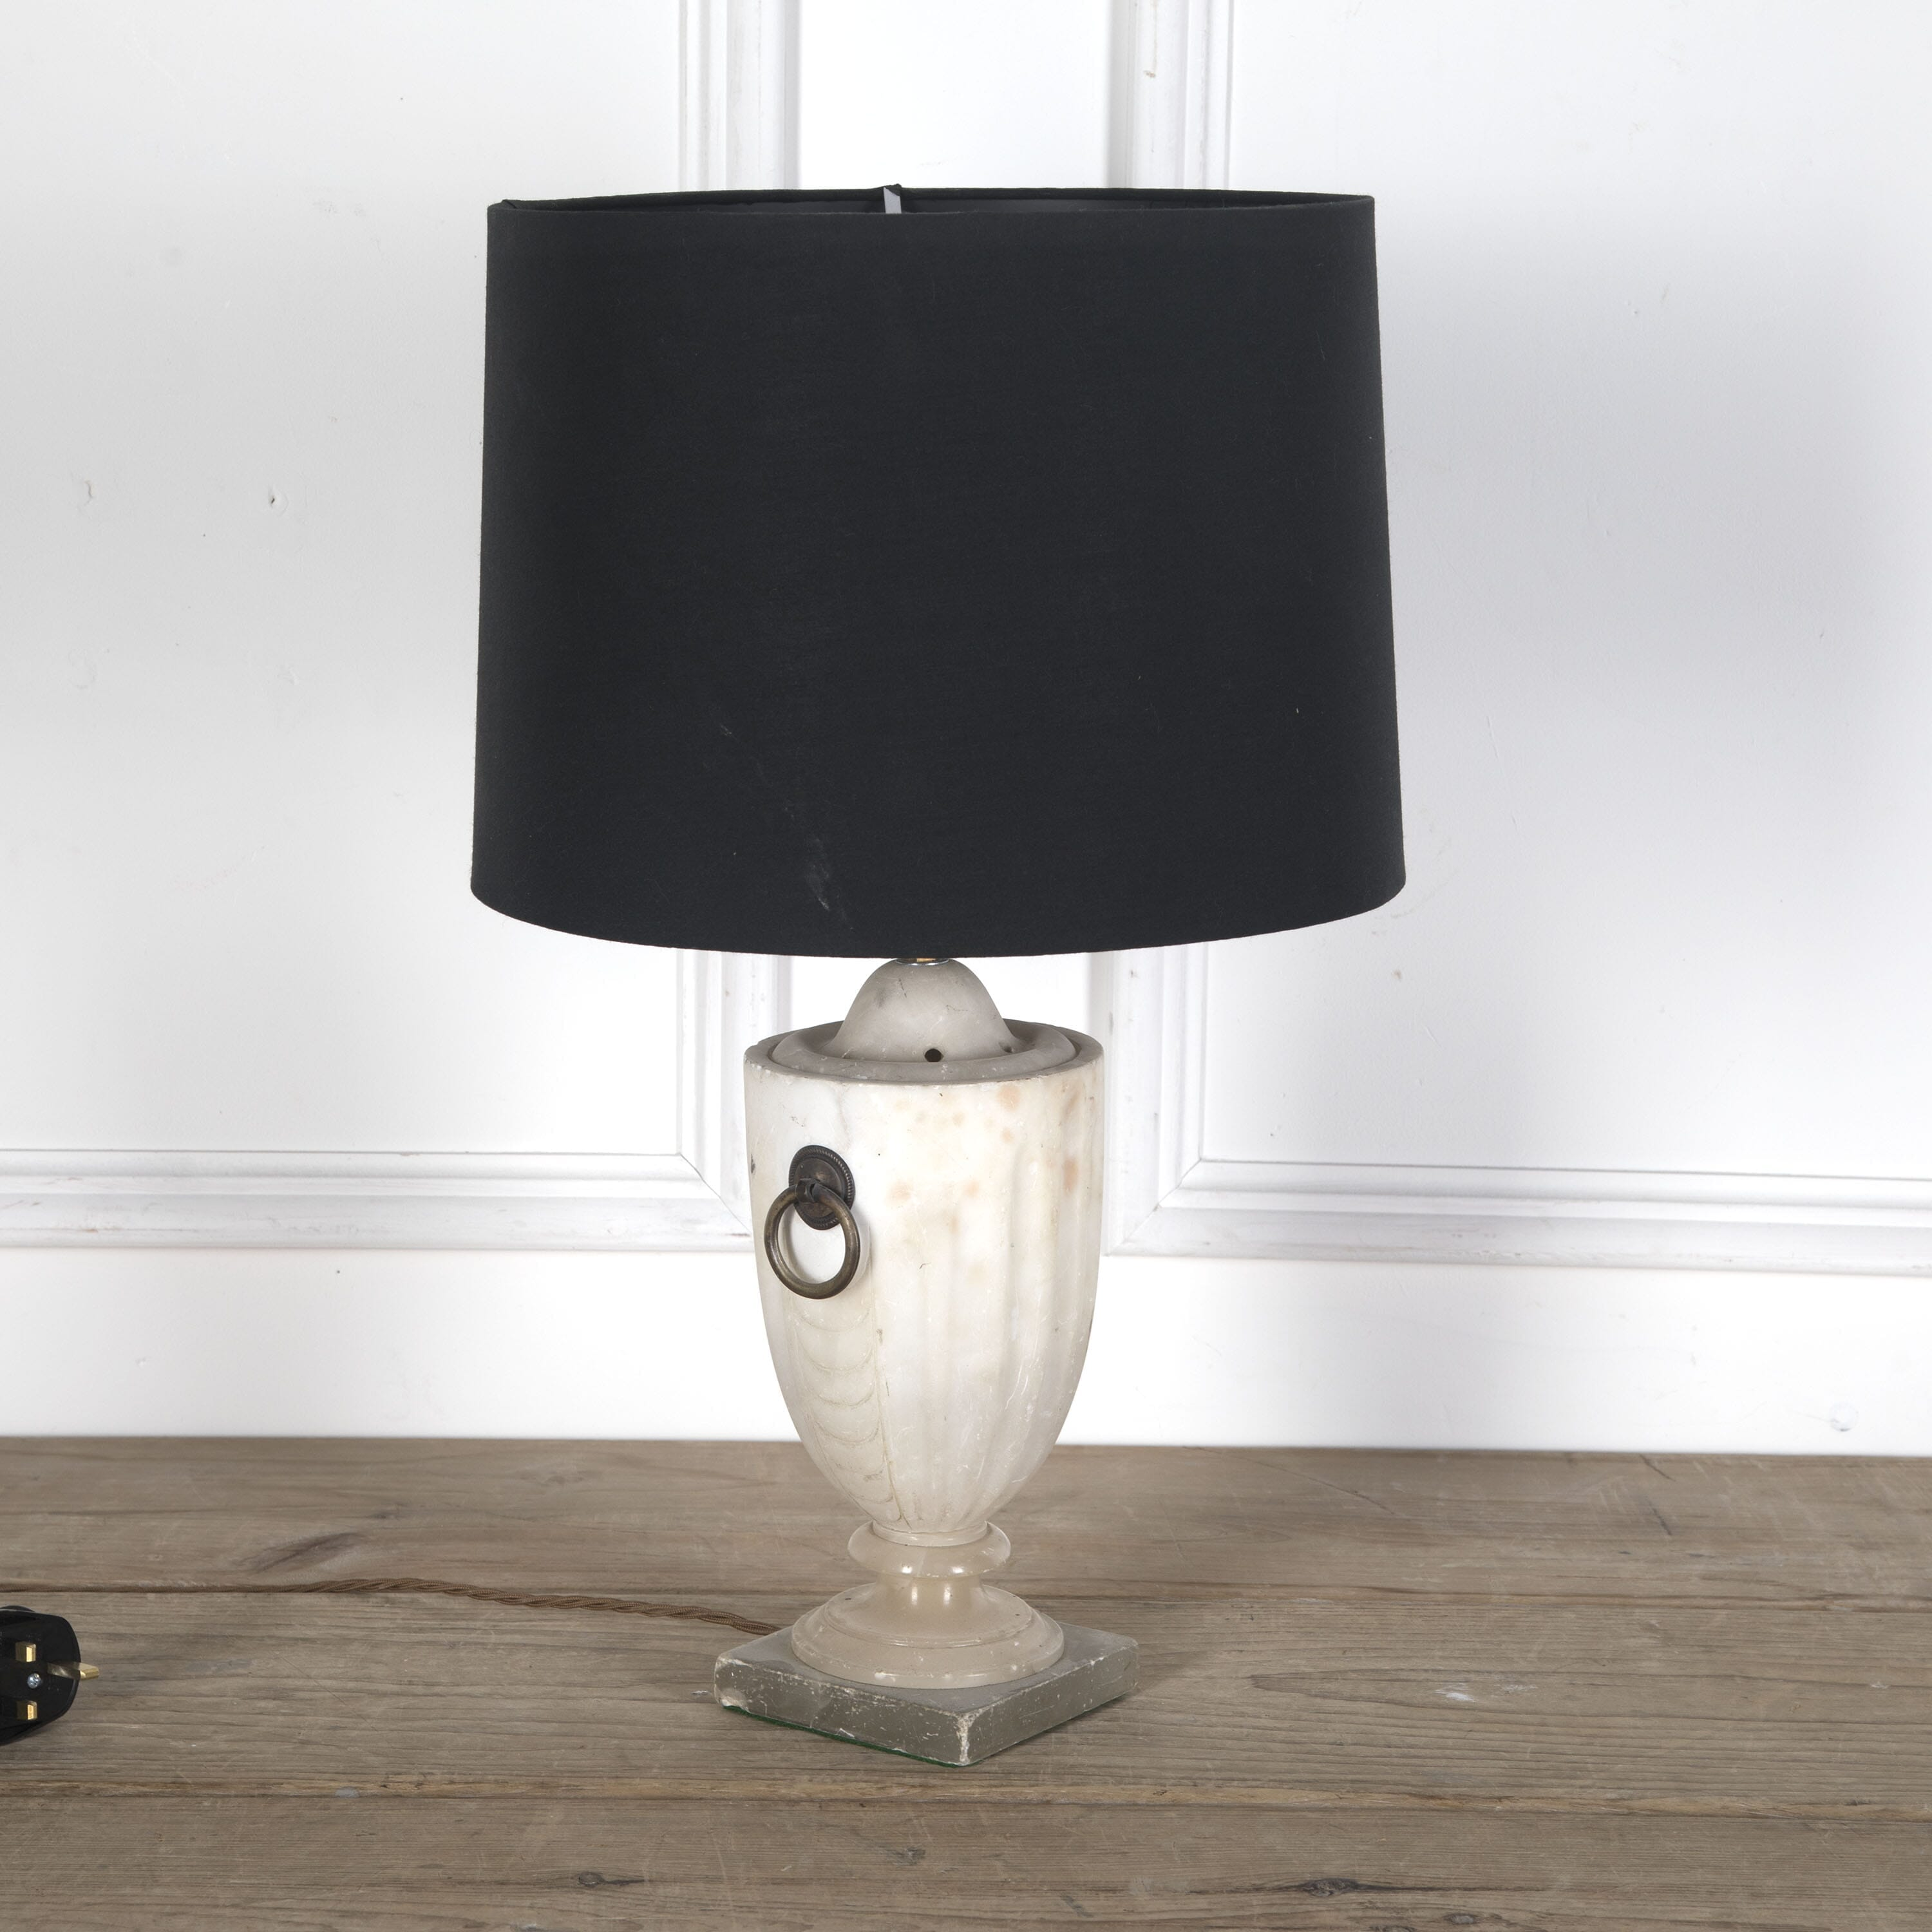 Alabaster Table Lamps 284 For Sale at